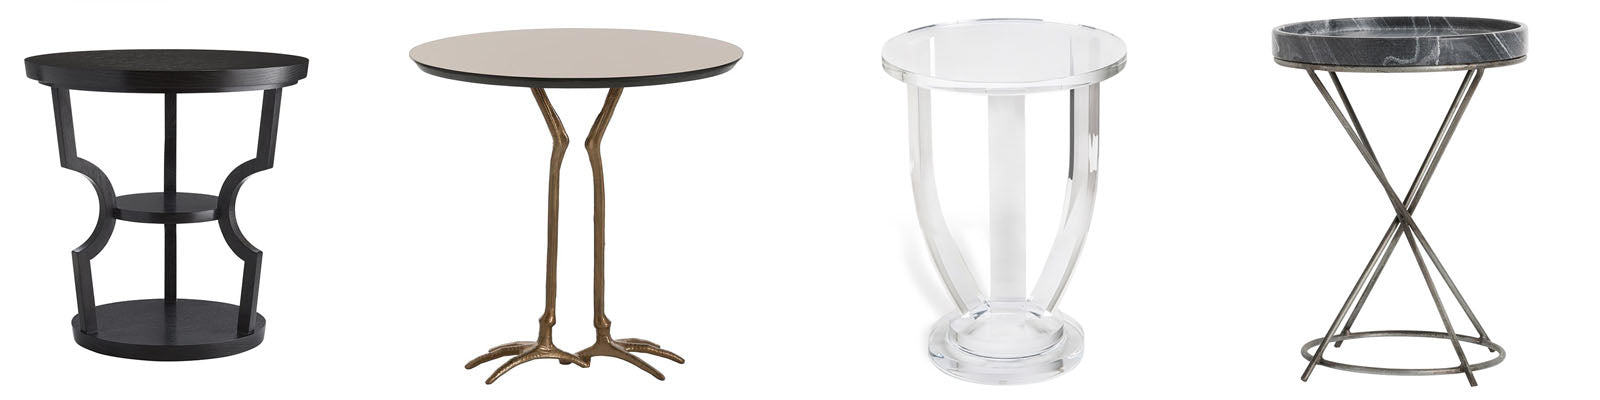 Duvall Atelier tables